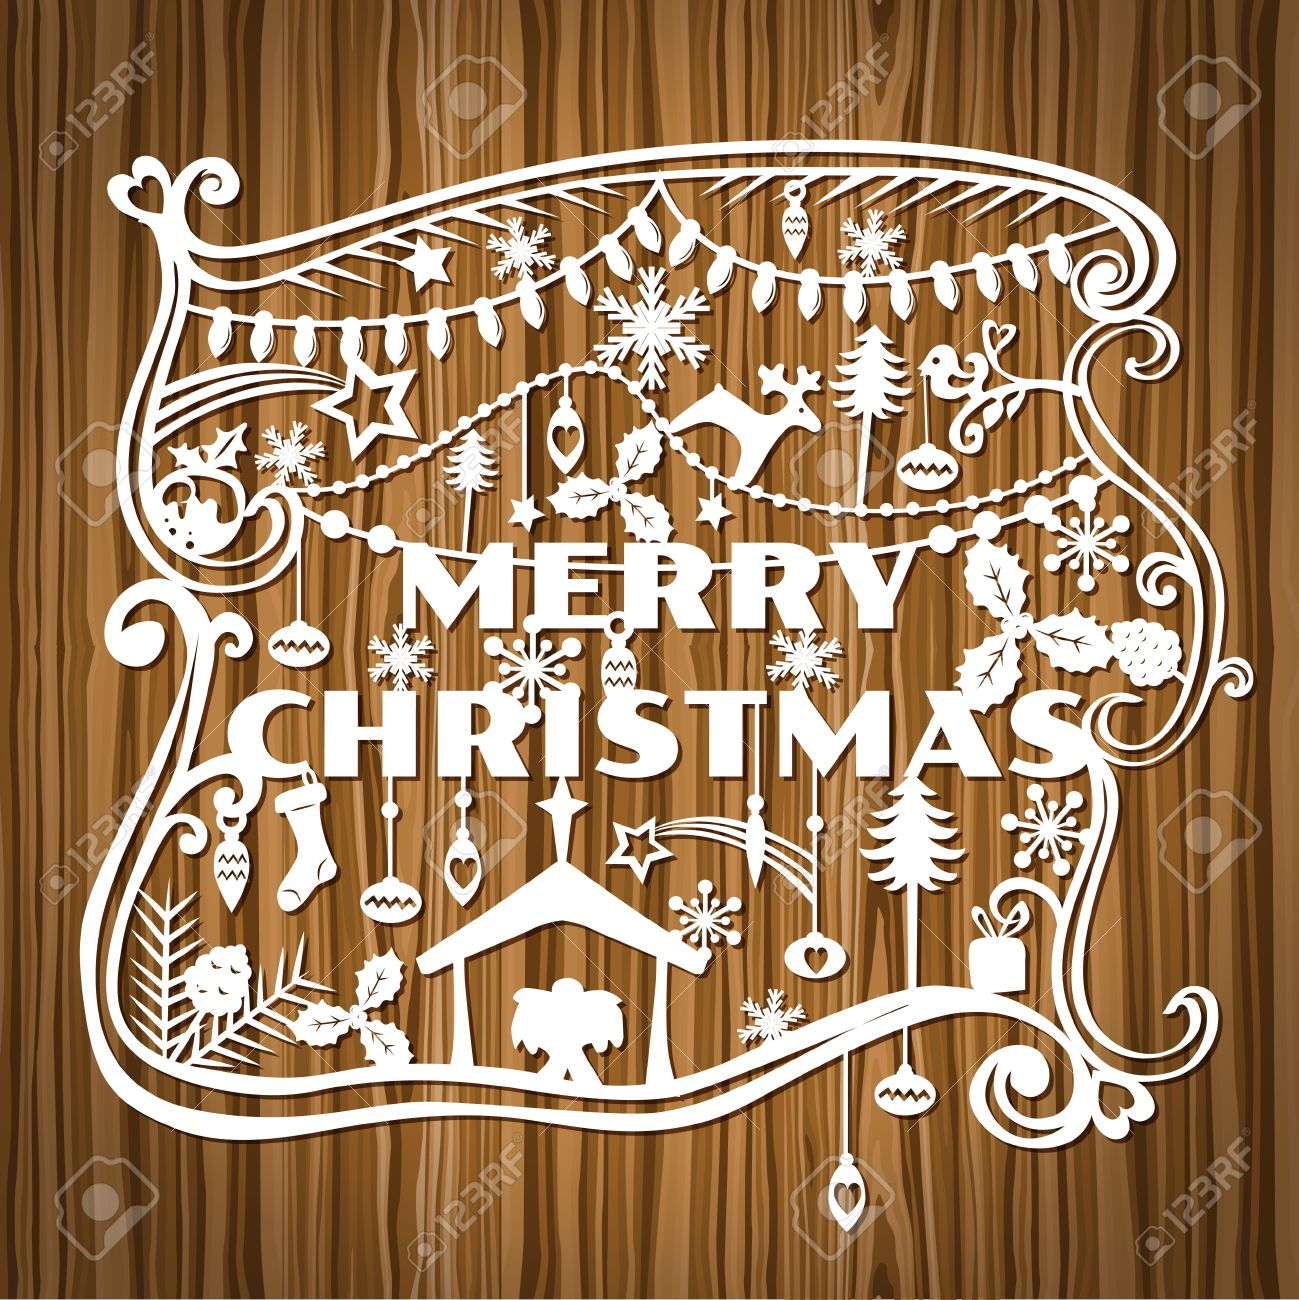 Merry Christmas Greeting Card - paper cut style Stock Vector - 15120269